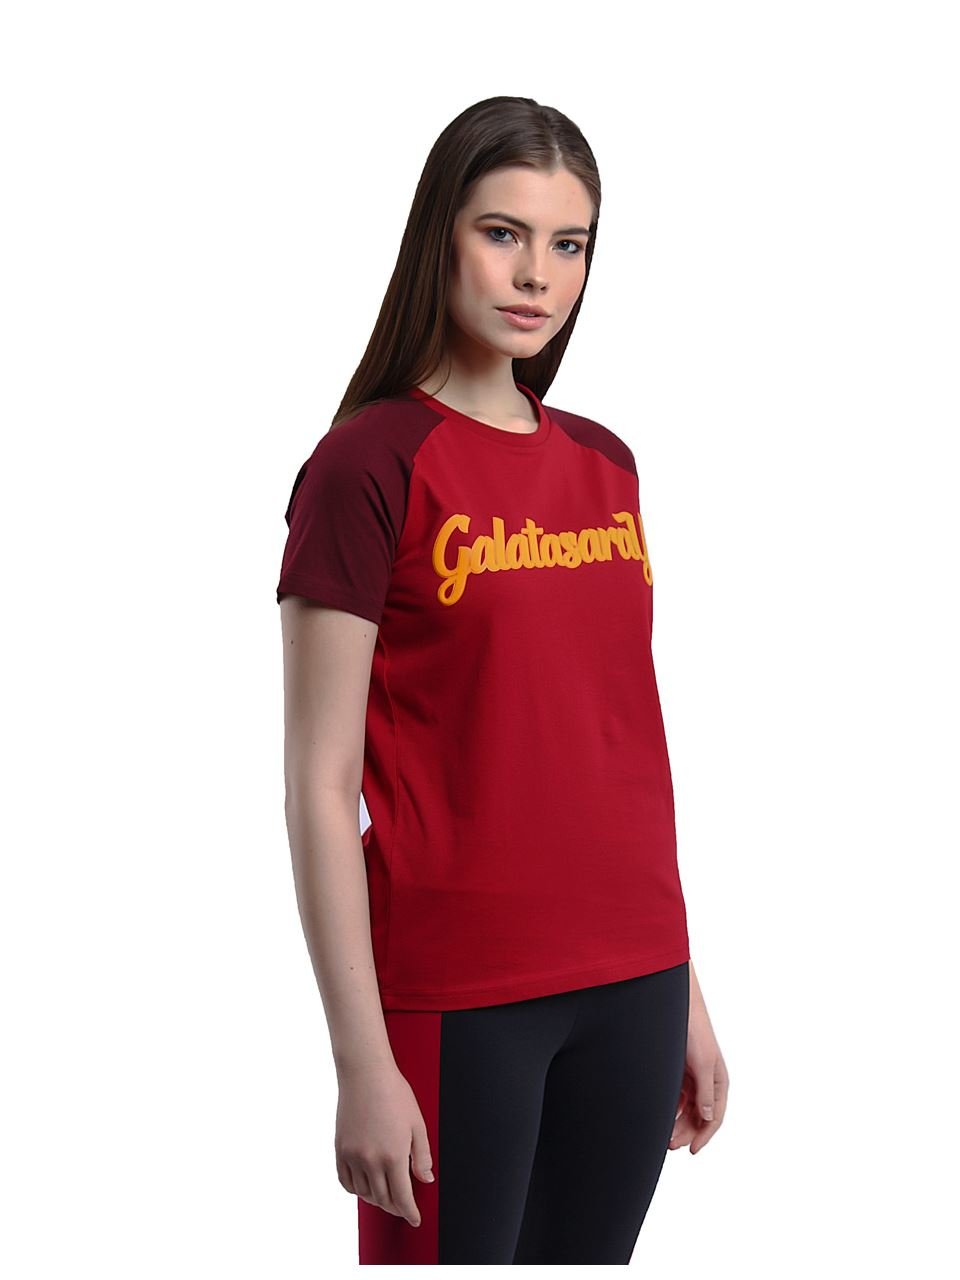 GALATASARAY KADIN  T-SHIRT K201111